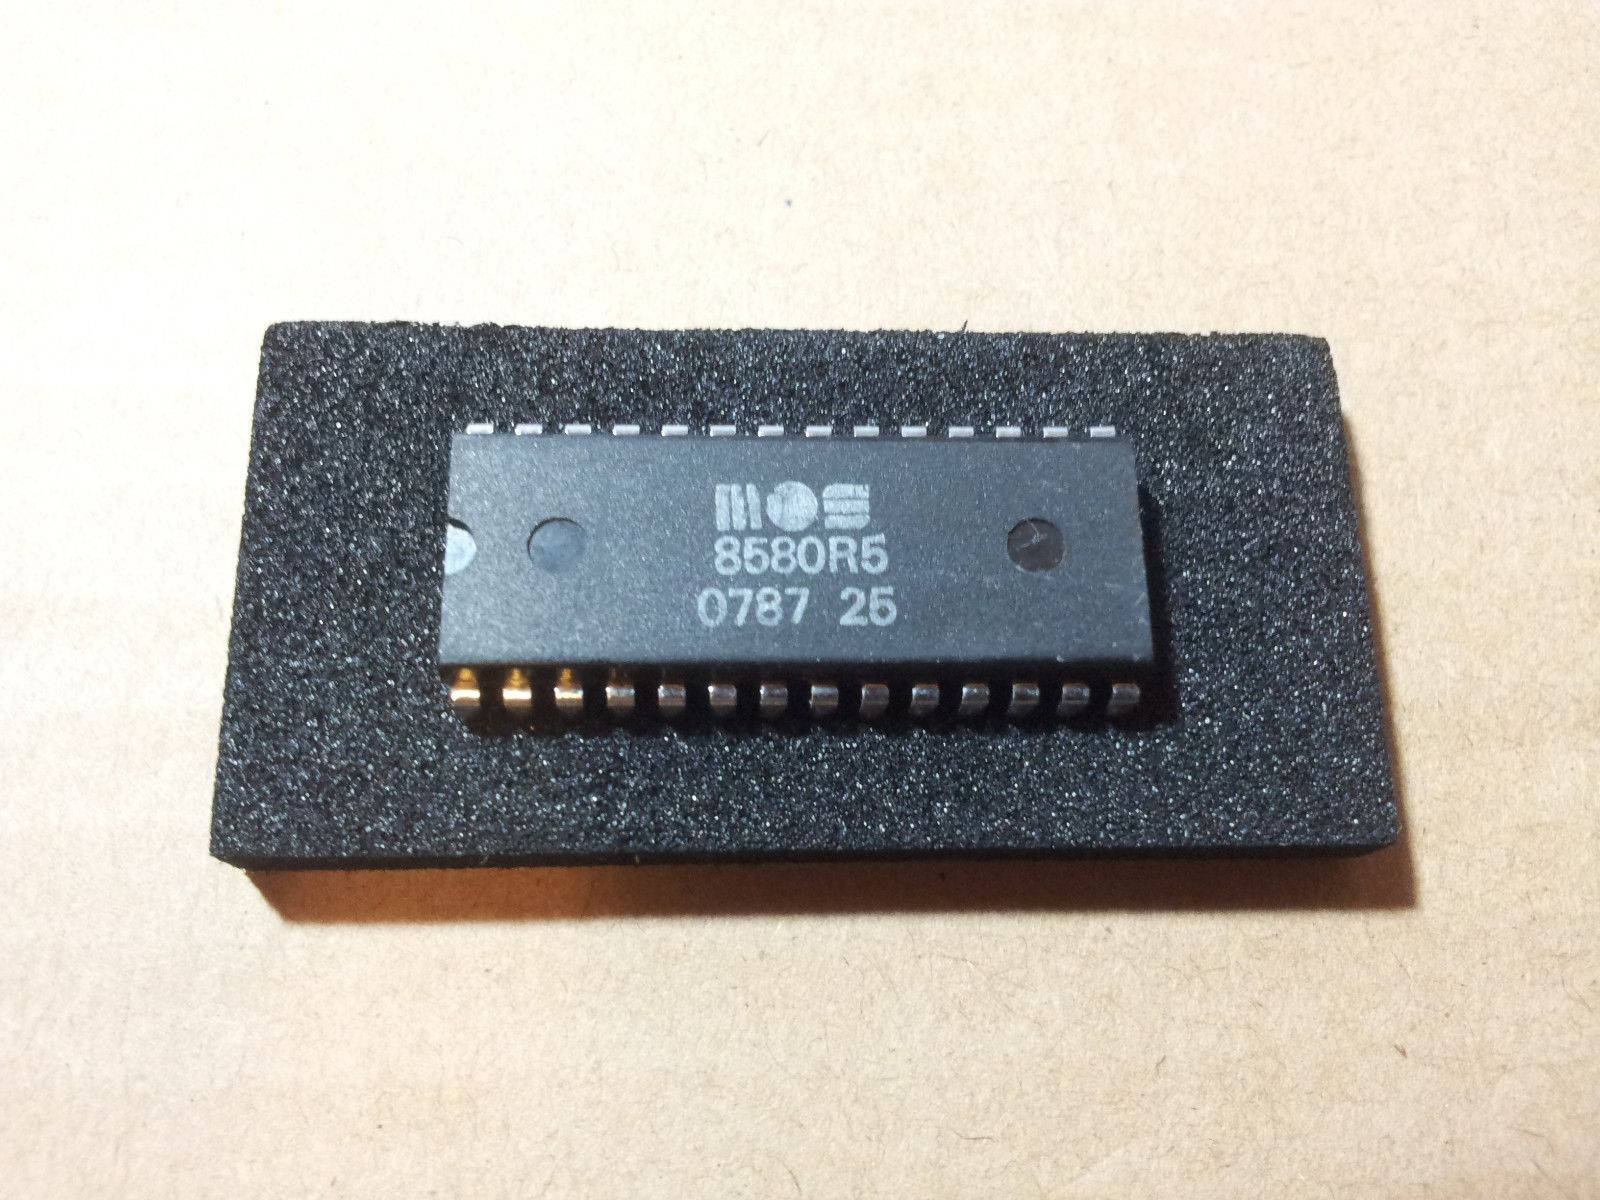 Mos 8580 Sid Chip MOS8580 Very RARE mos 6581 | chips | Chips